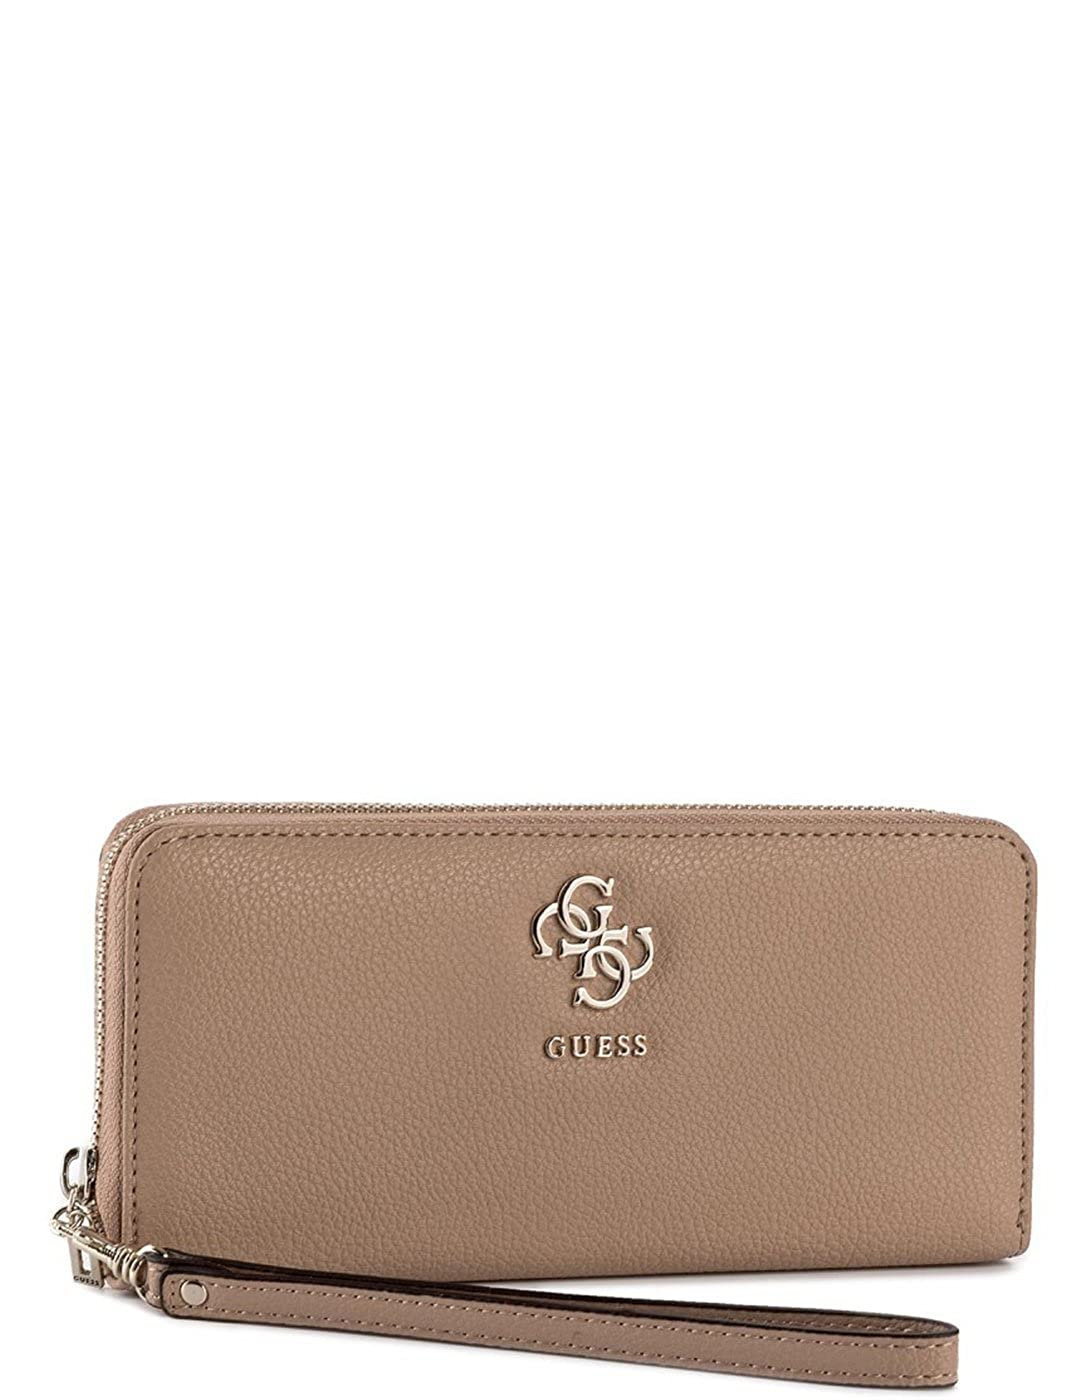 Guess cartera marrón claro (Única - Marrón): Amazon.es: Ropa ...